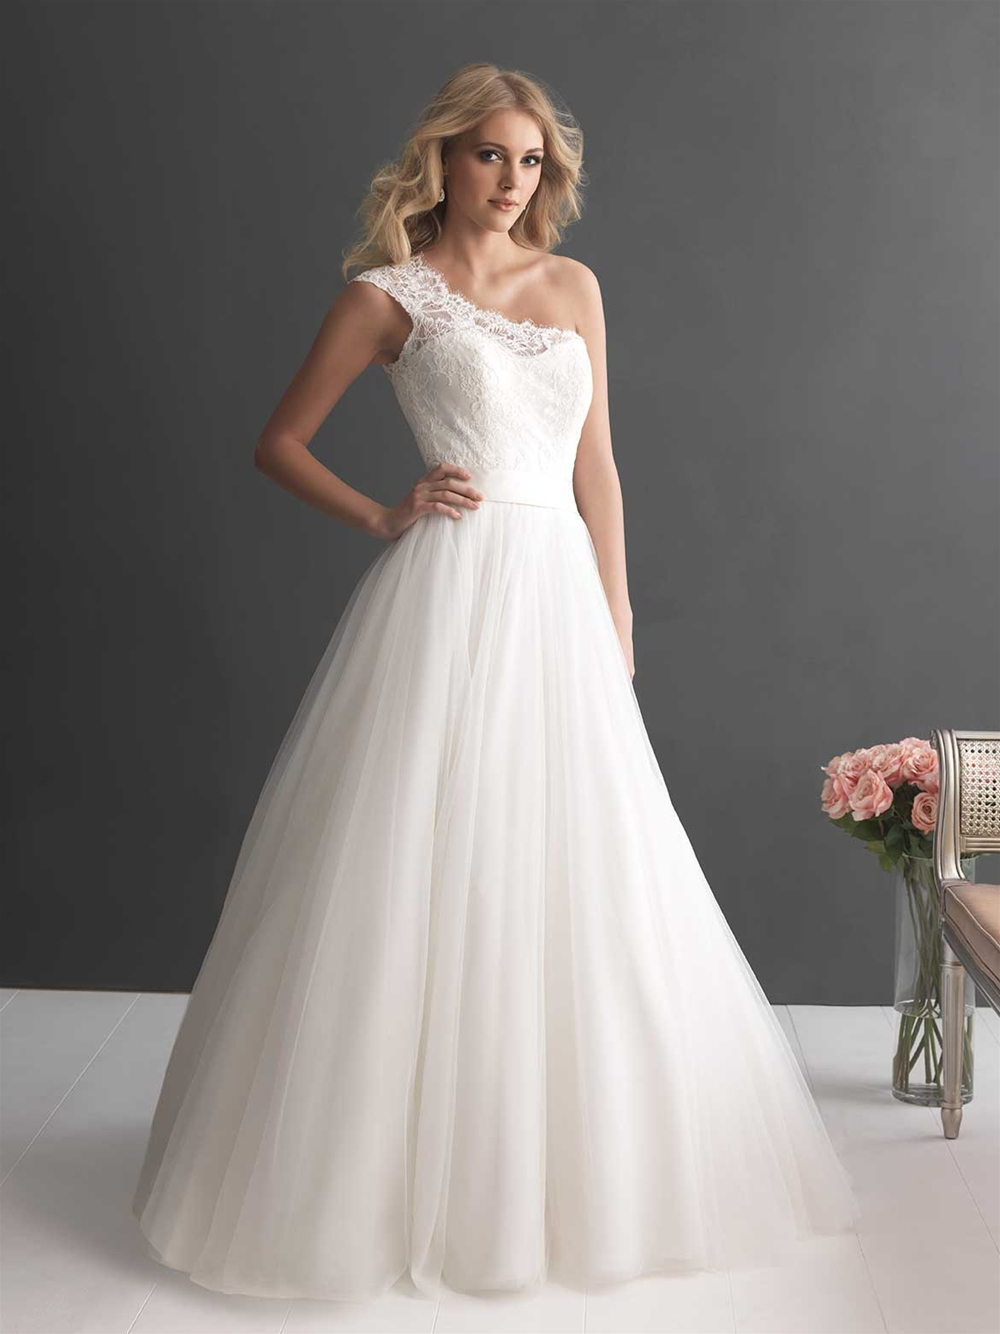 Chinese country lace wedding dress one shoulder tulle for Lace shoulder wedding dress